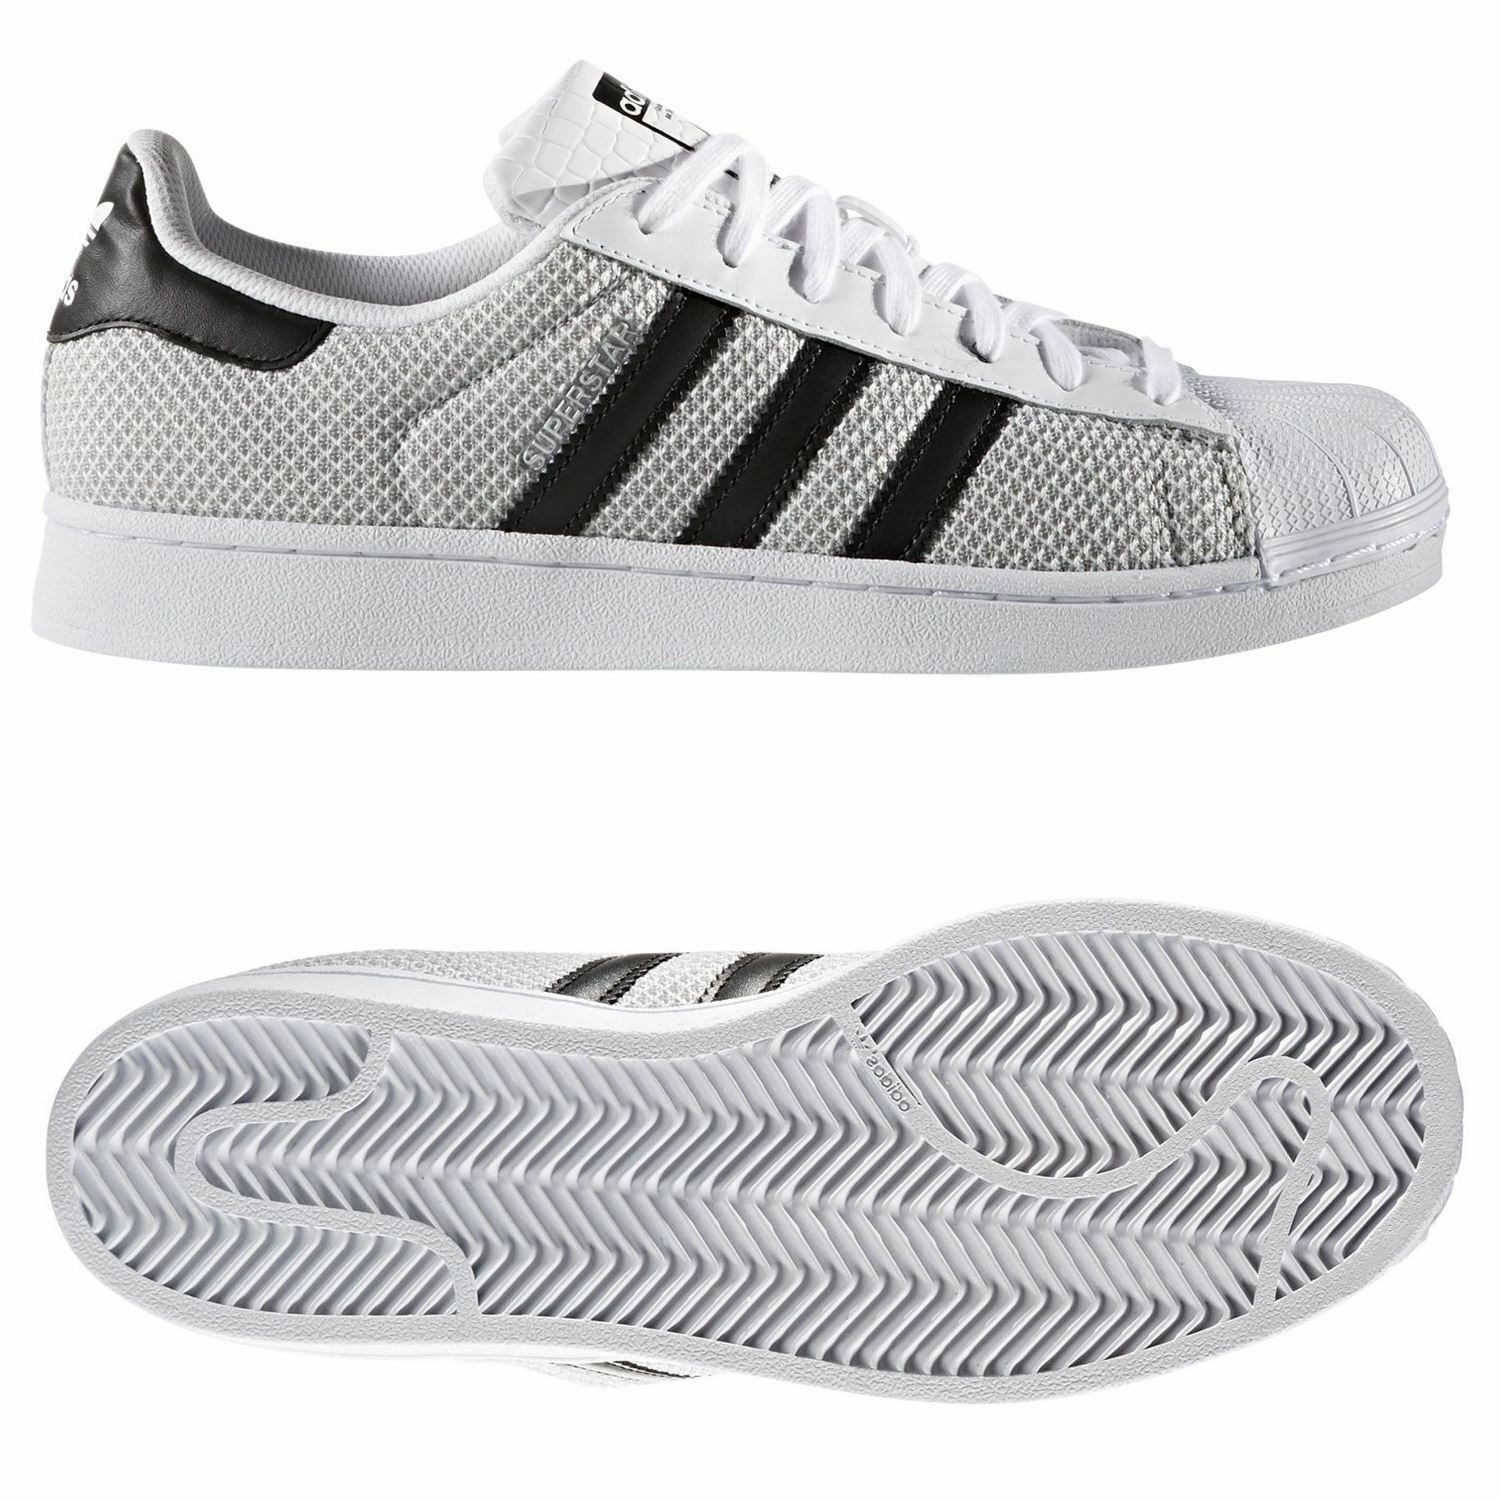 Adidas ORIGINALS SUPERSTAR TRAINERS GREY UNISEX KIDS WEAVE FASHION RARE NEW BNWT